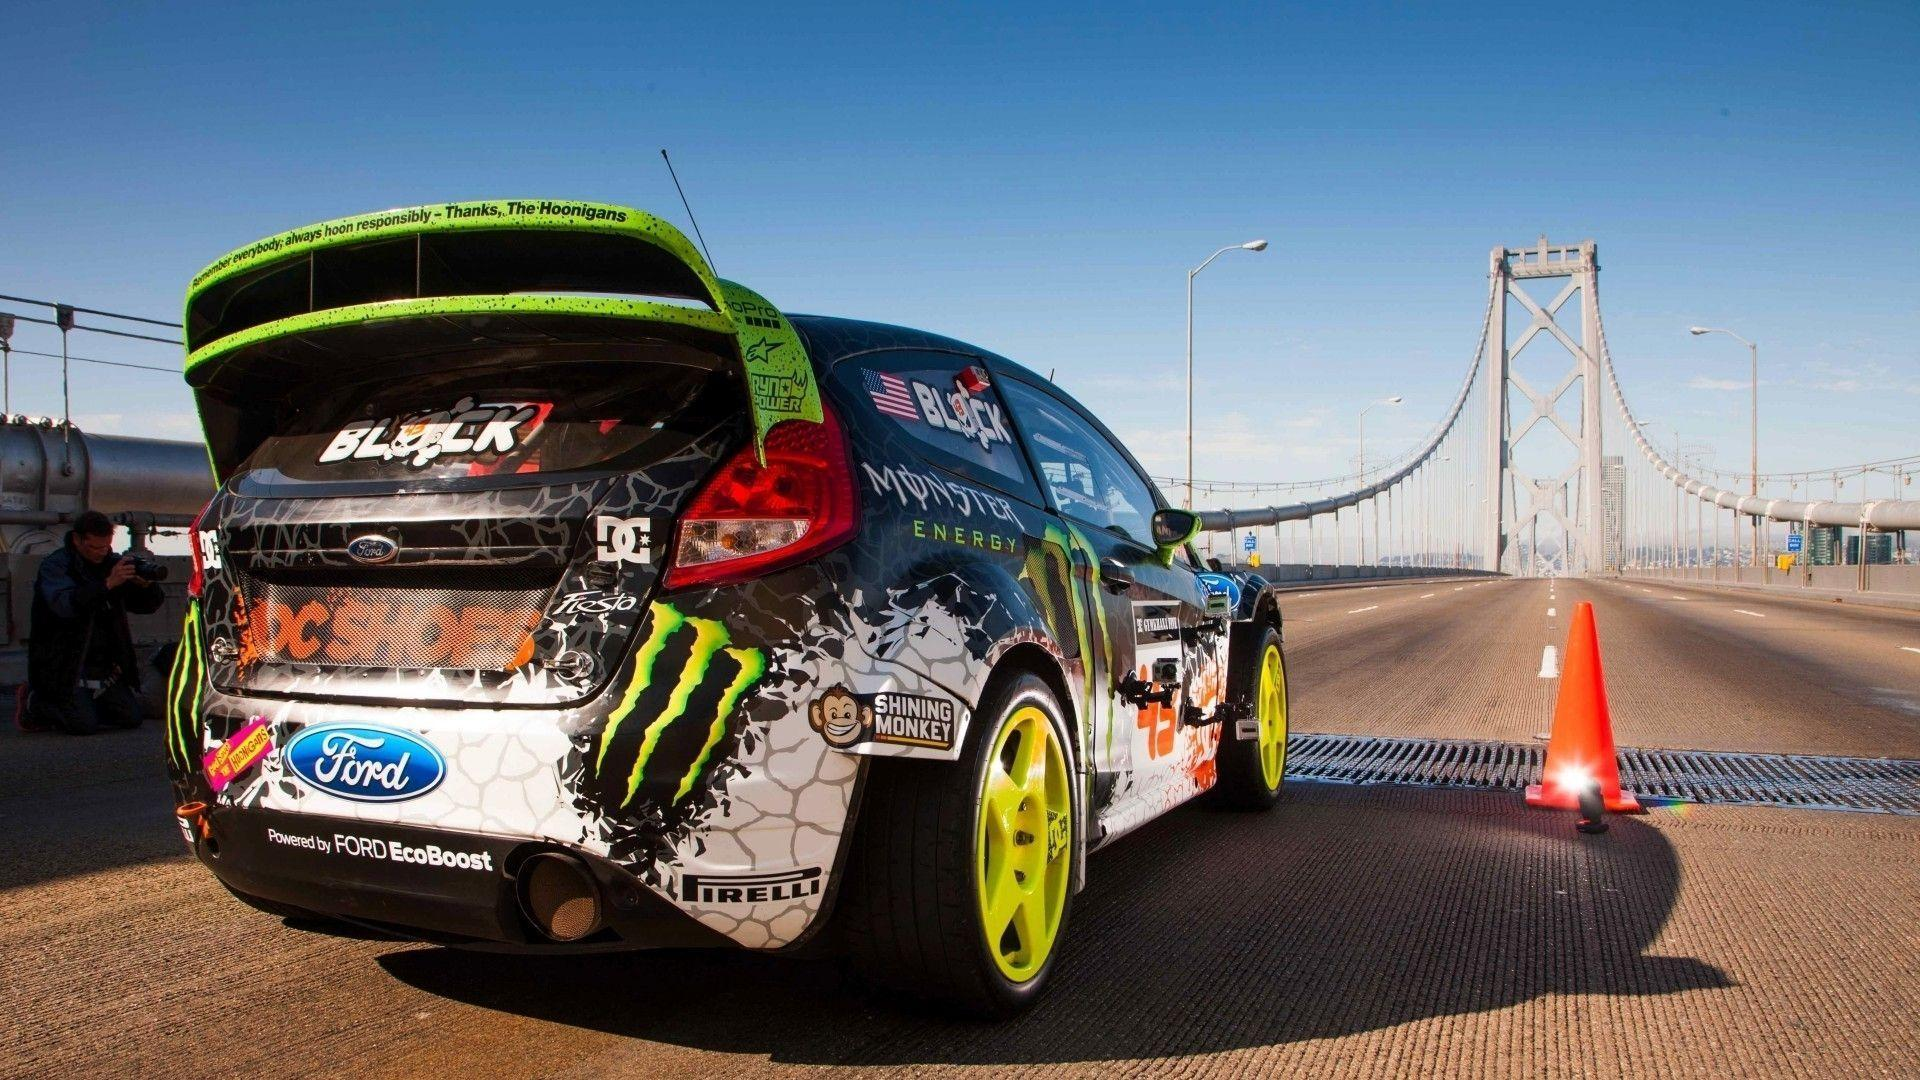 ken block ford fiesta 2016 wallpapers wallpaper cave. Cars Review. Best American Auto & Cars Review